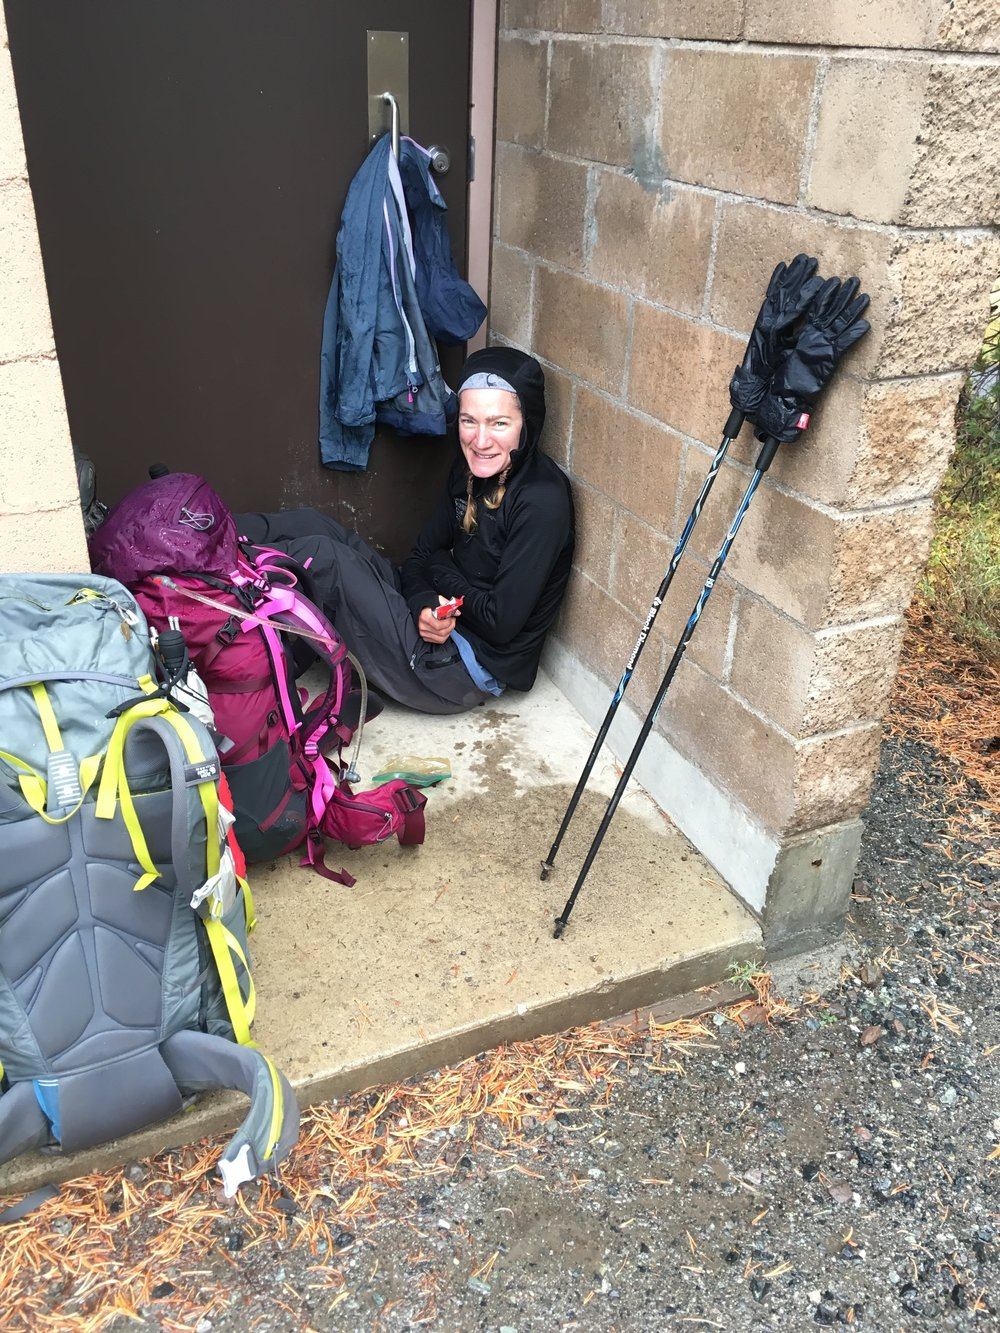 The outhouse alcove made a perfect place to stay dry and eat a snack before Vicki arrived to pick us up at Sonora Pass in the storm. (You know you're a thru-hiker when...)